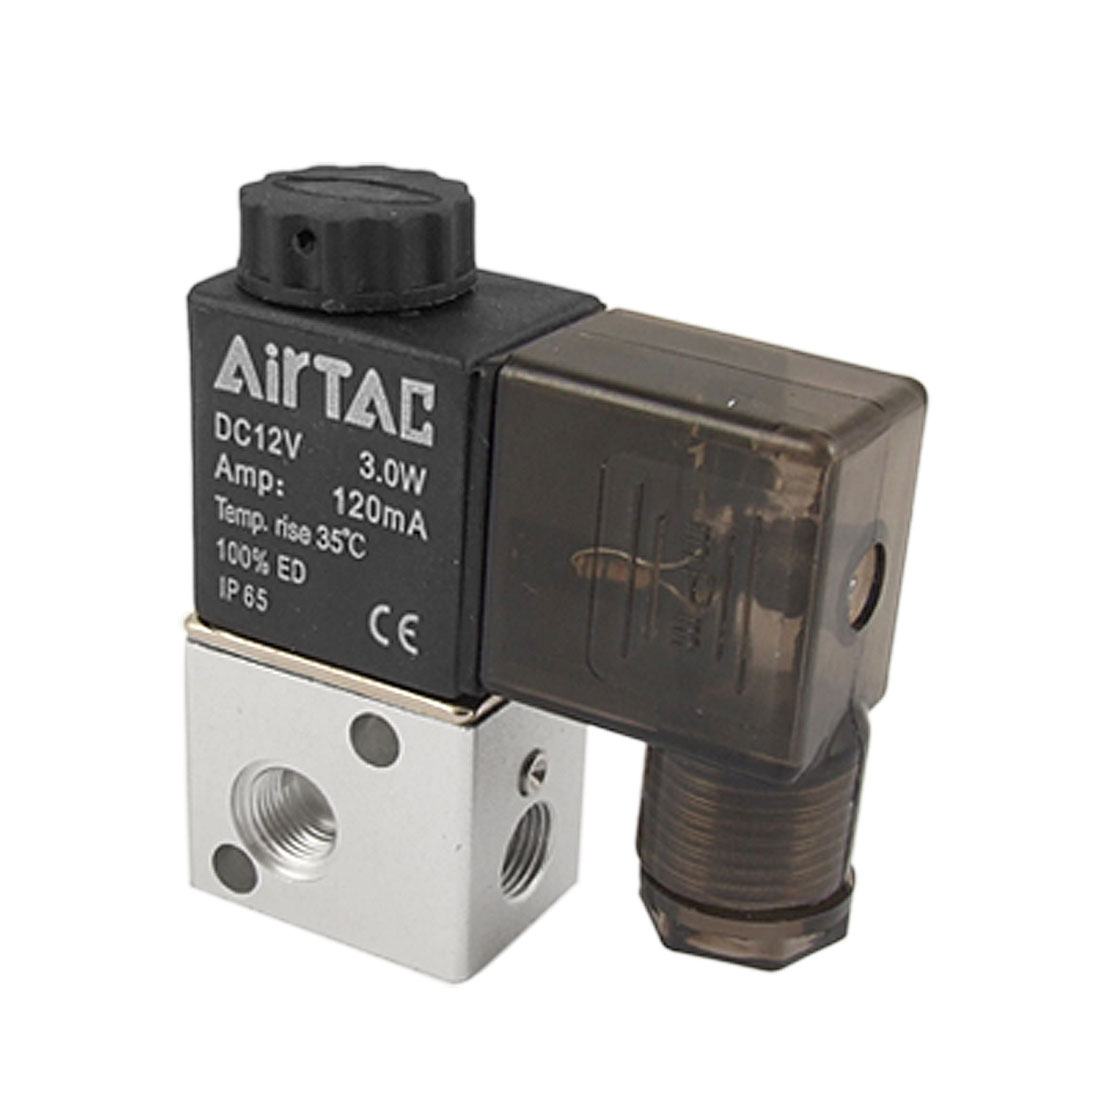 3V1-06 2 Position 3 Way 120mA Pneumatic Solenoid Valve